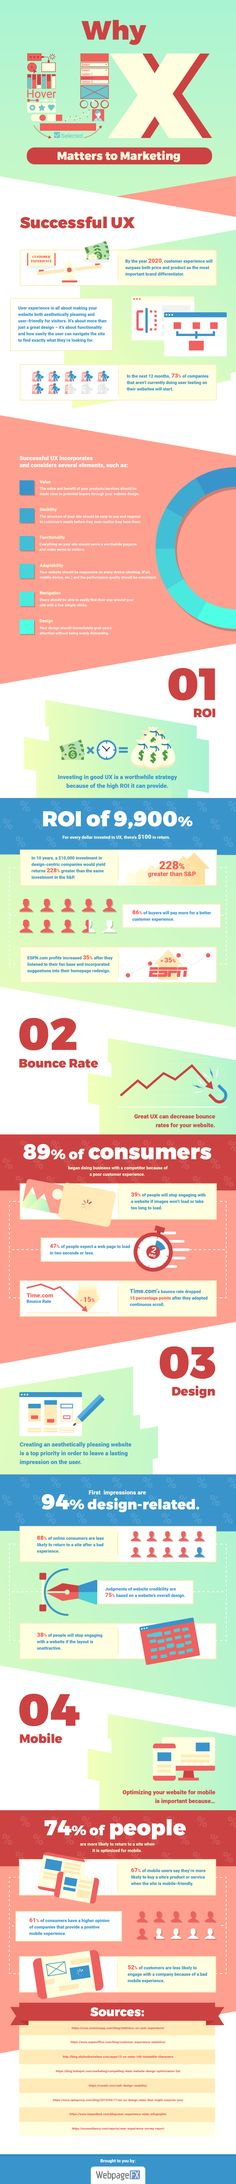 Why UX matters to marketing #infographic